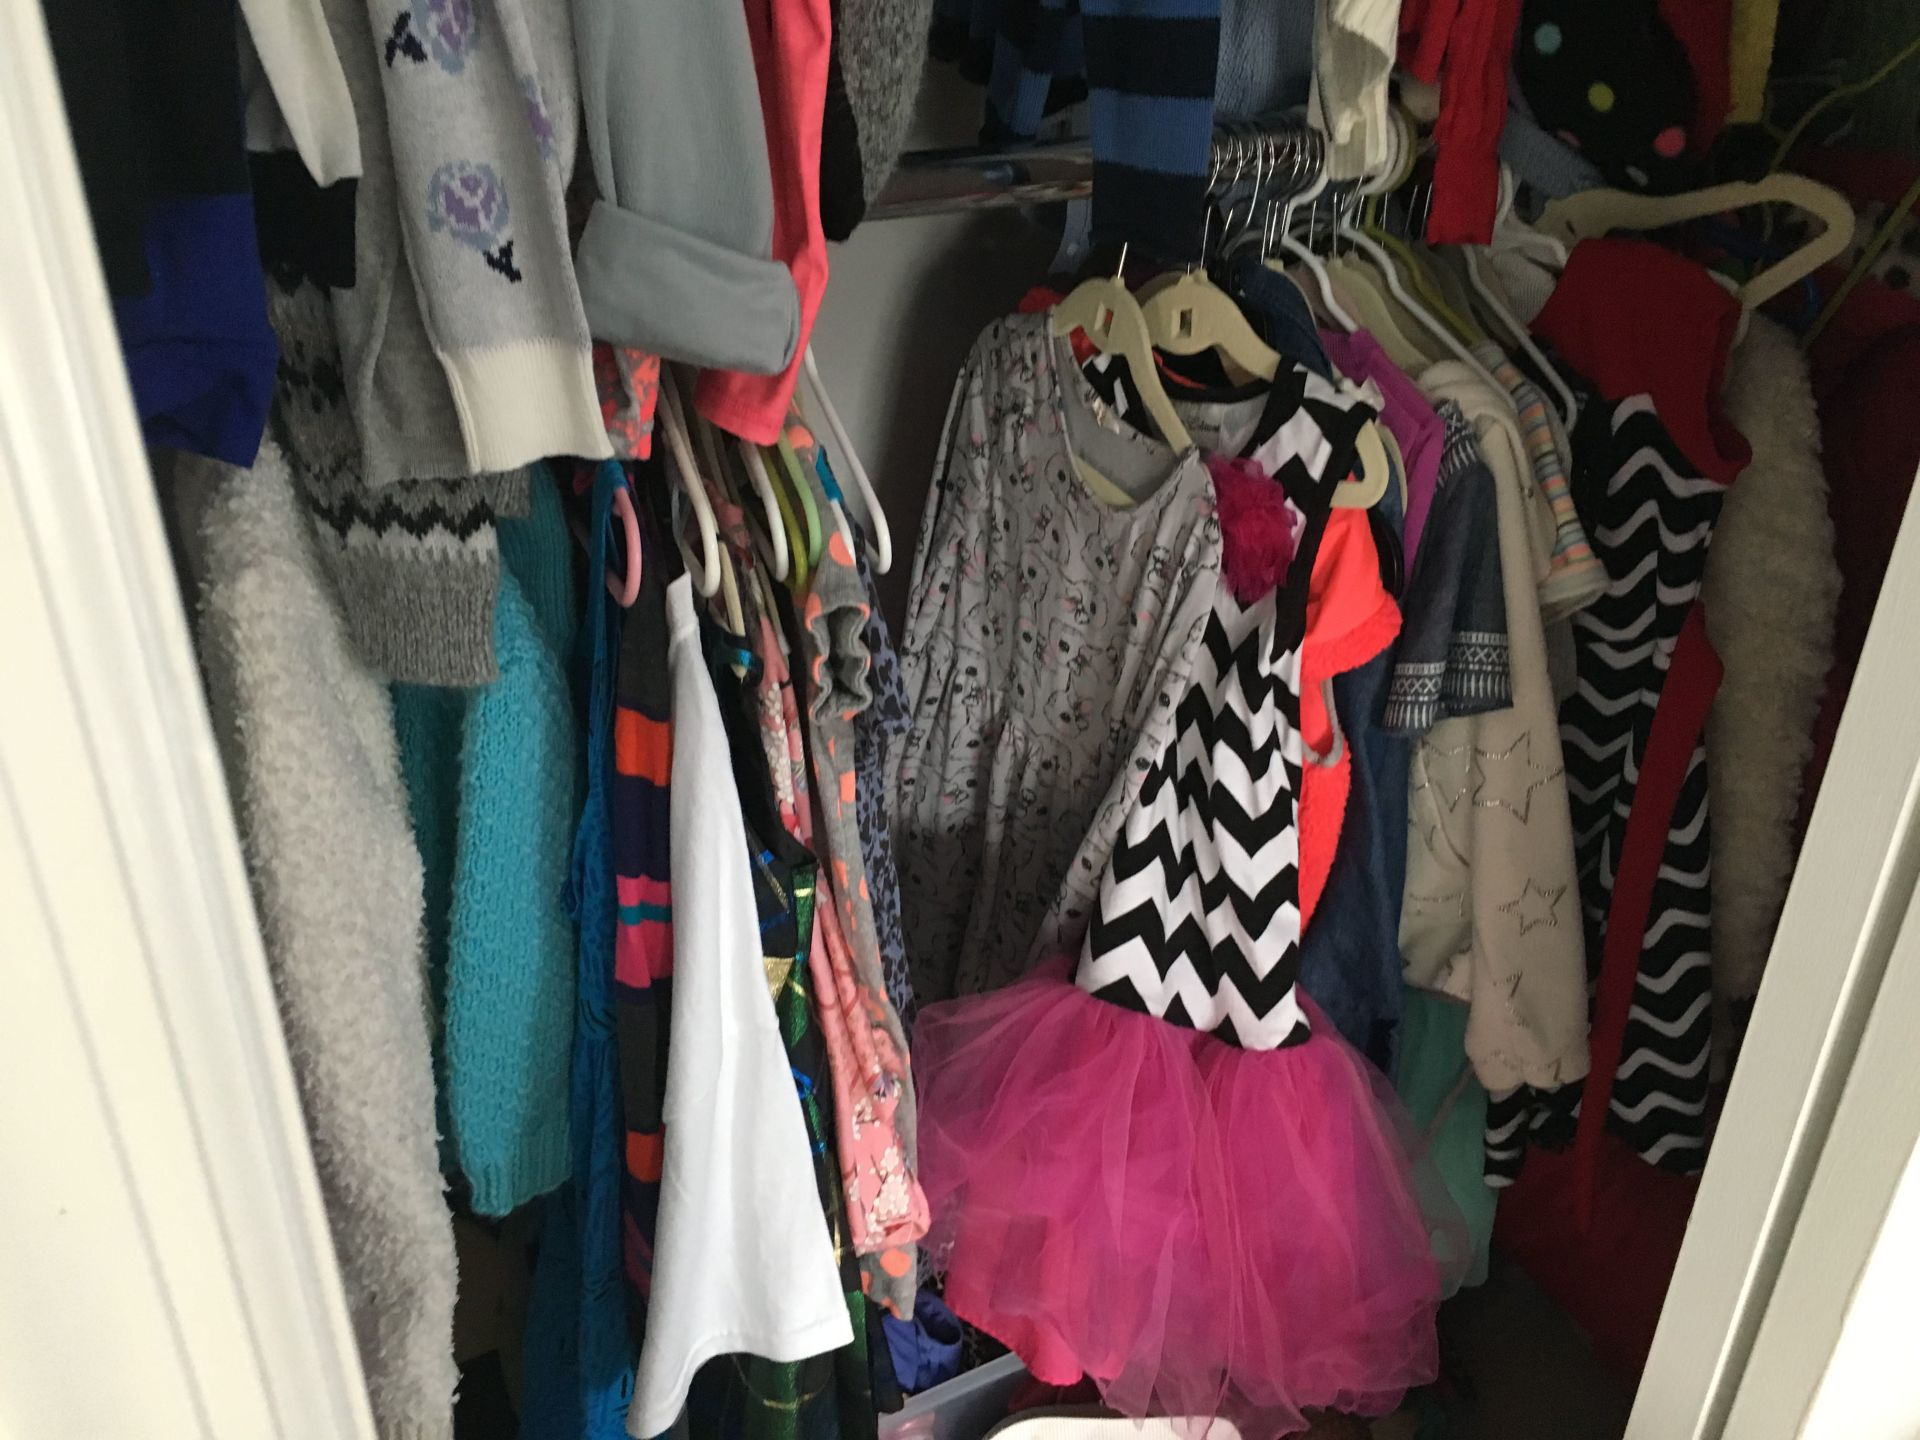 We've got some beautiful clothes for a beautiful girl but she needed some room in her room!